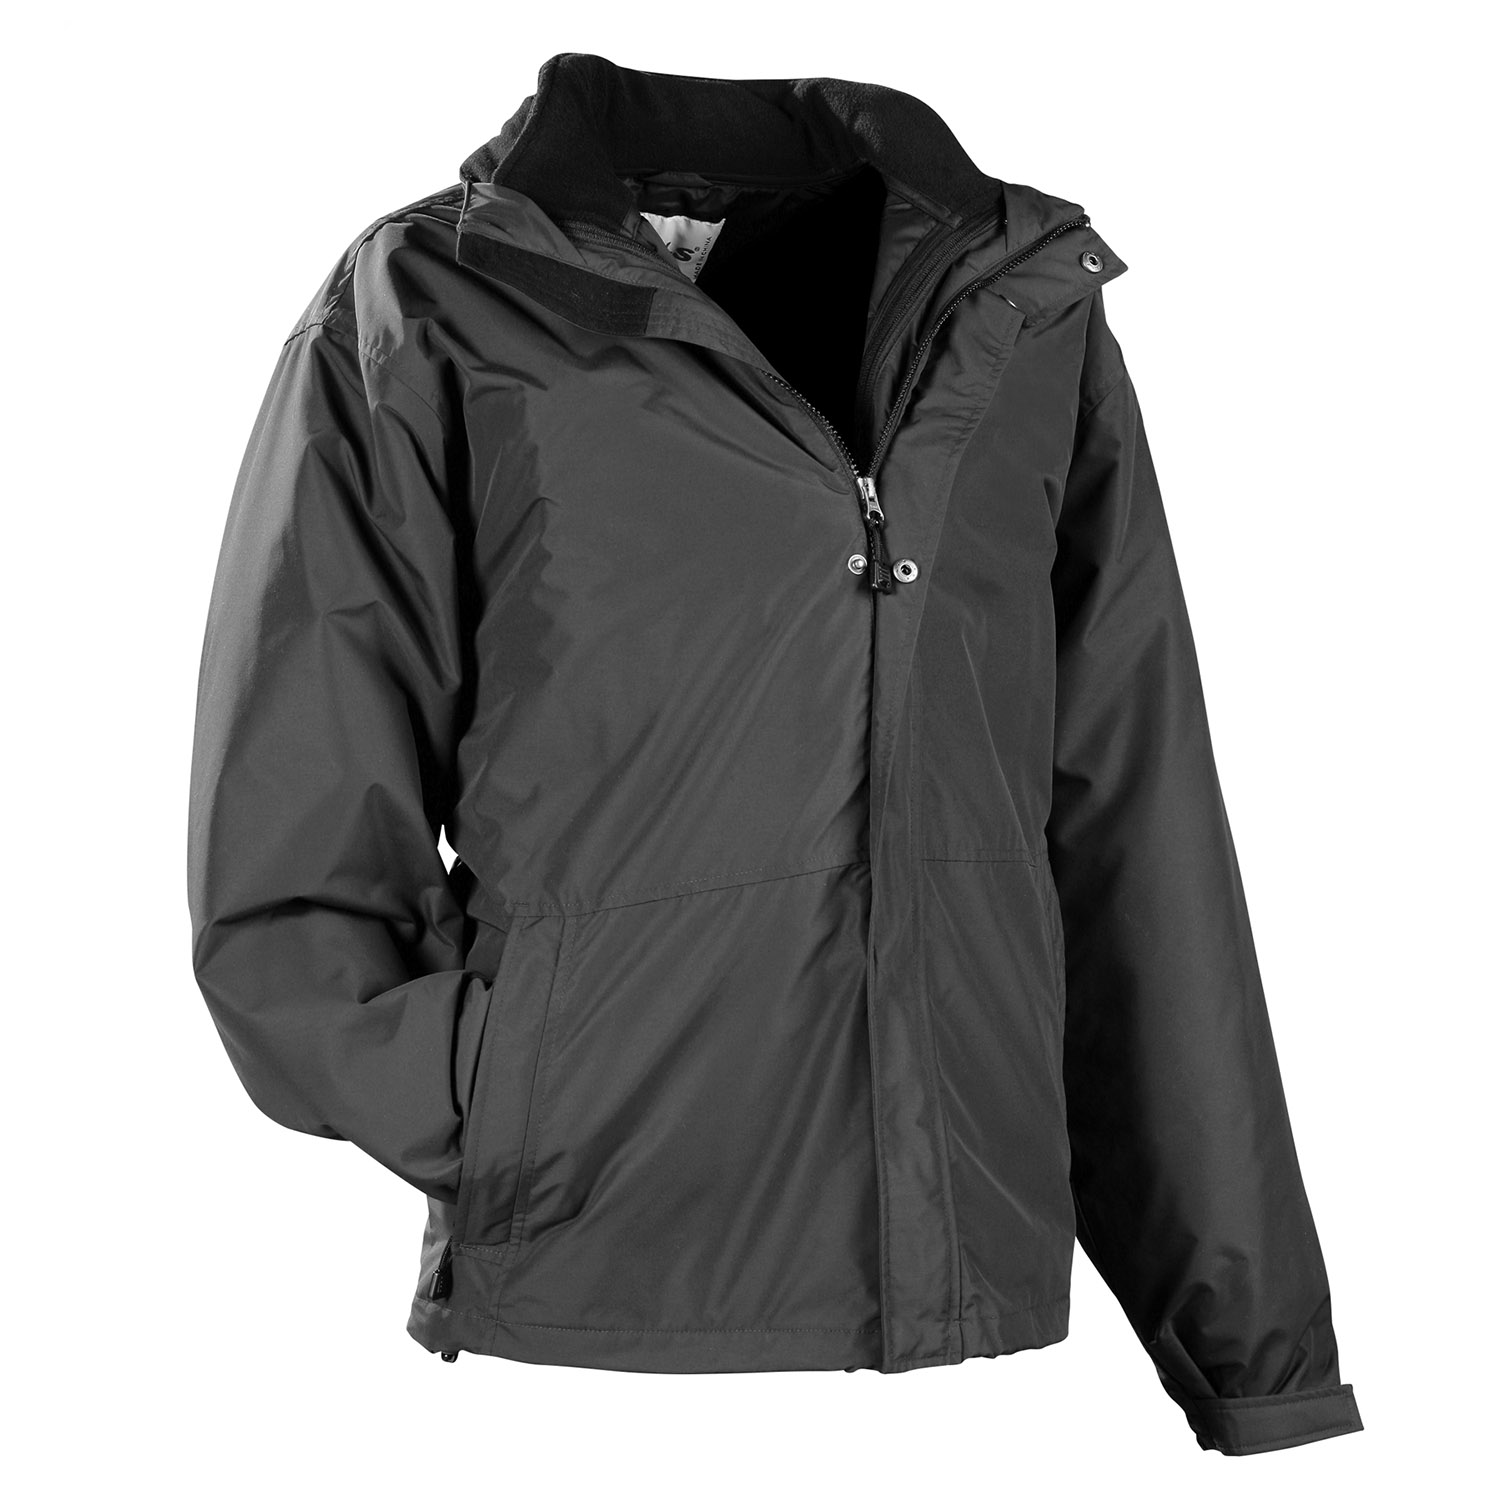 Galls 3-in-1 System Jacket